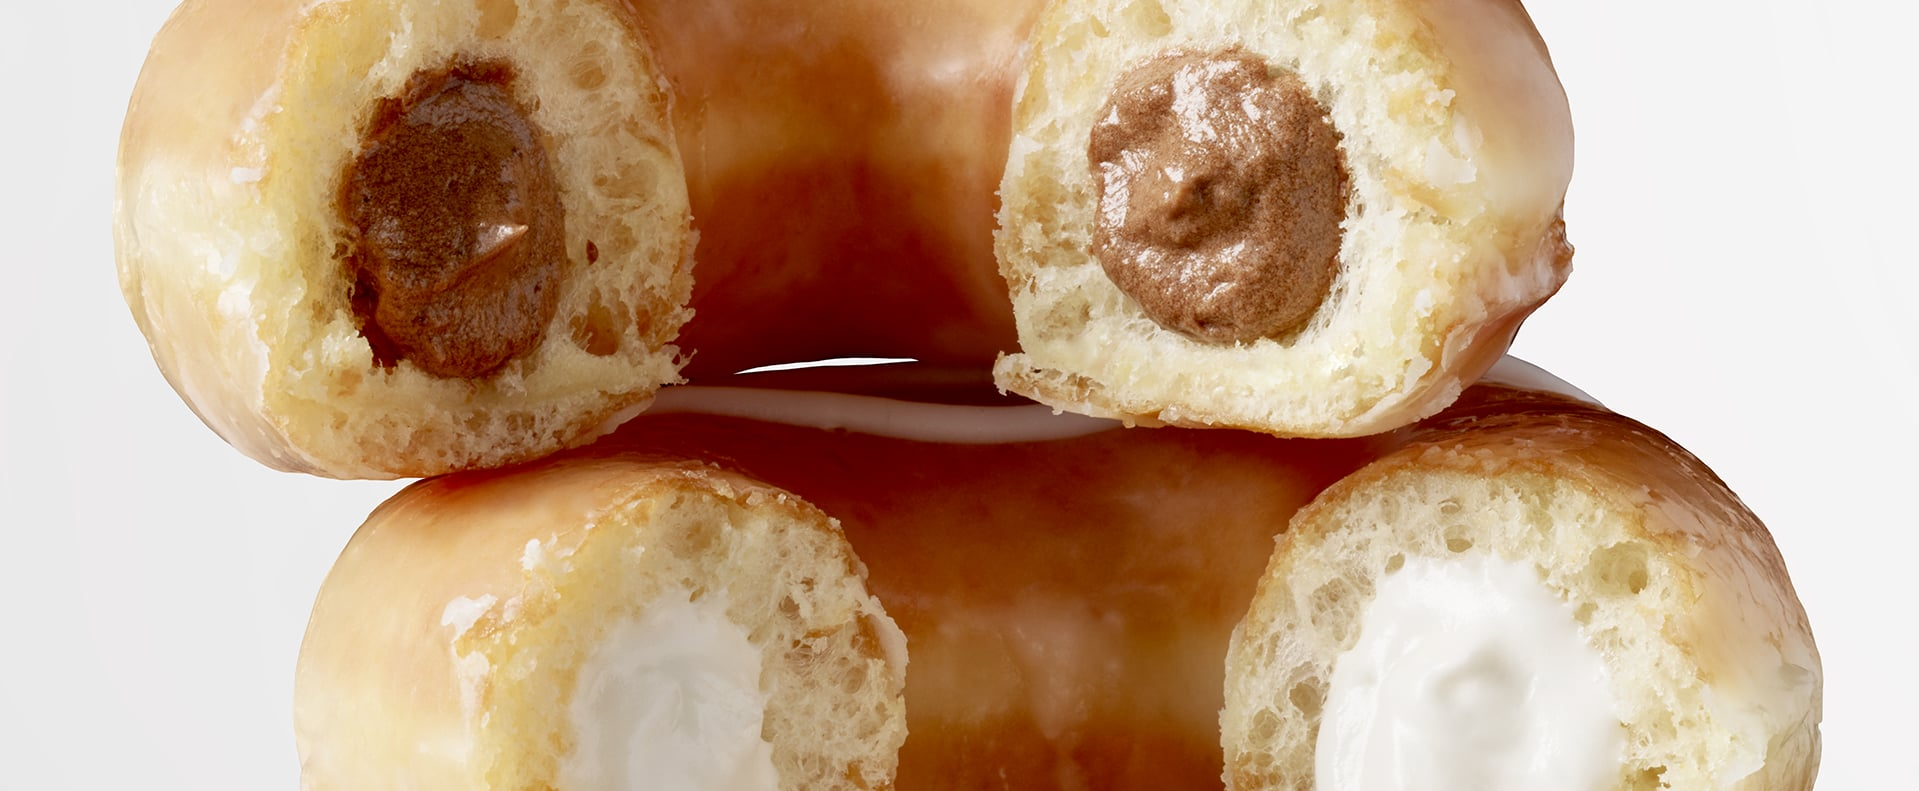 Krispy Kreme Glazed Cream-Filled Doughnuts 2019